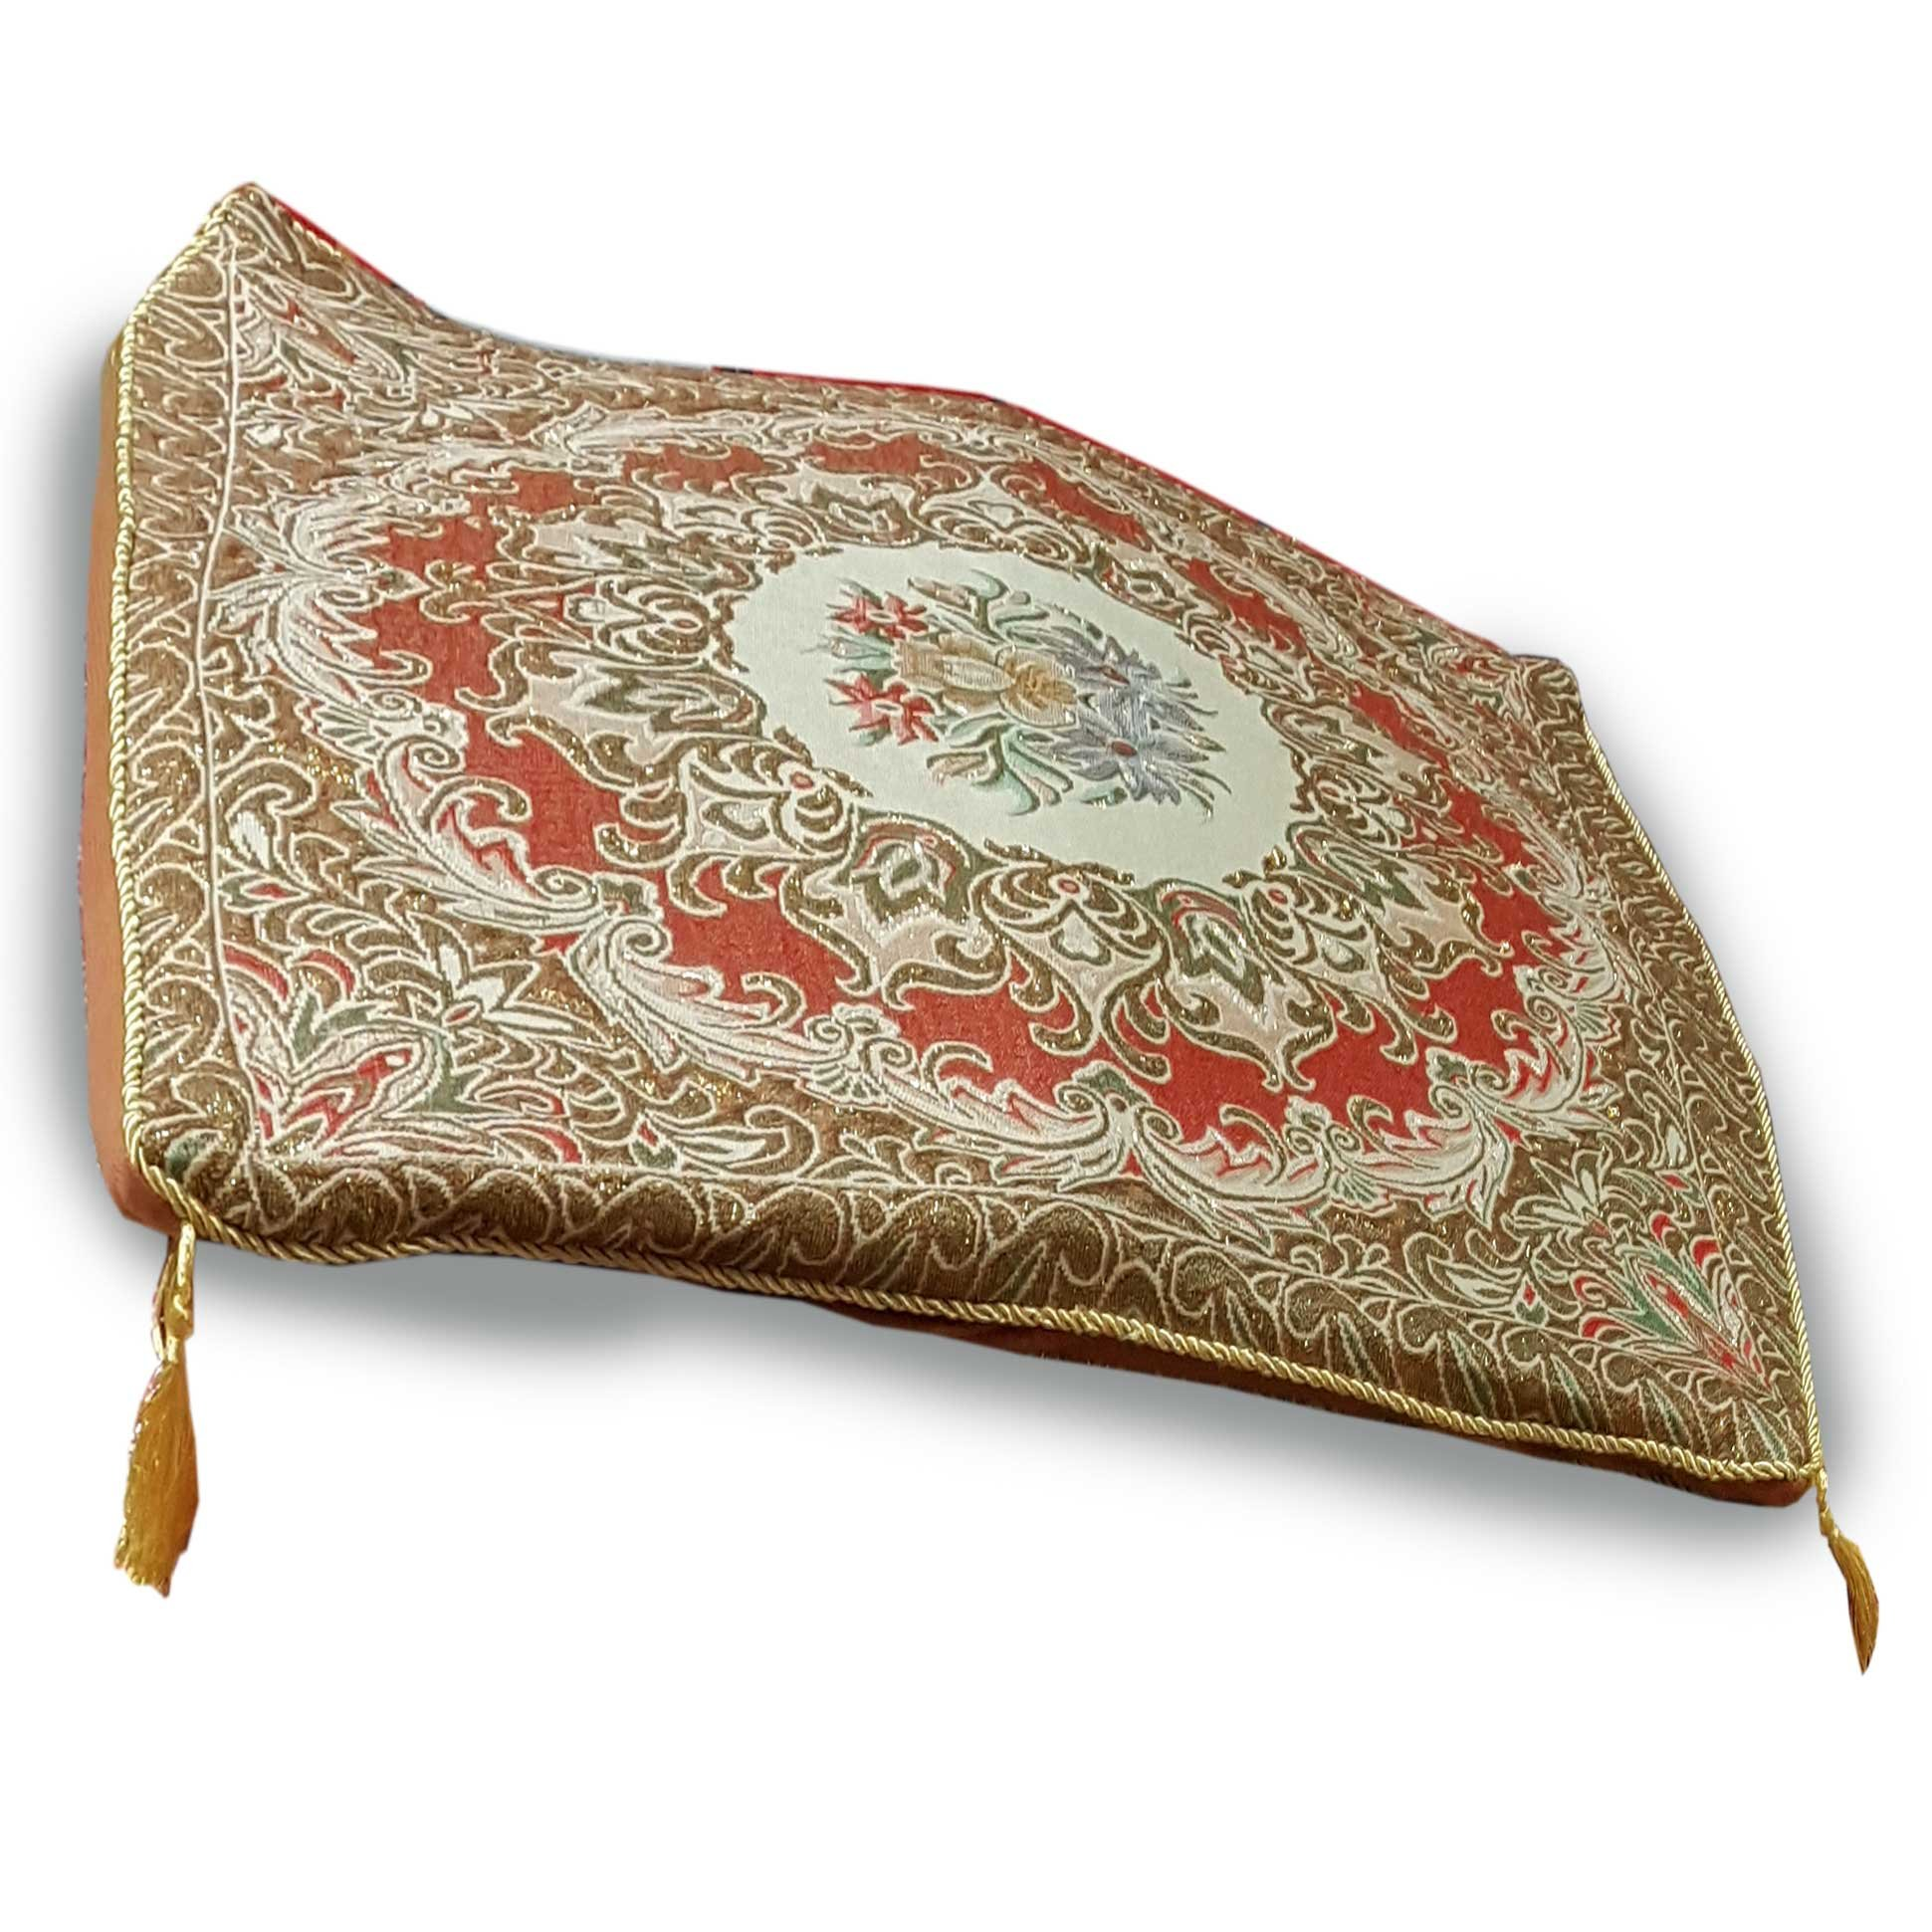 Thai asana Buddhist, meditation cushion, Gold / Red size 24X24 inches by Thai OTOP